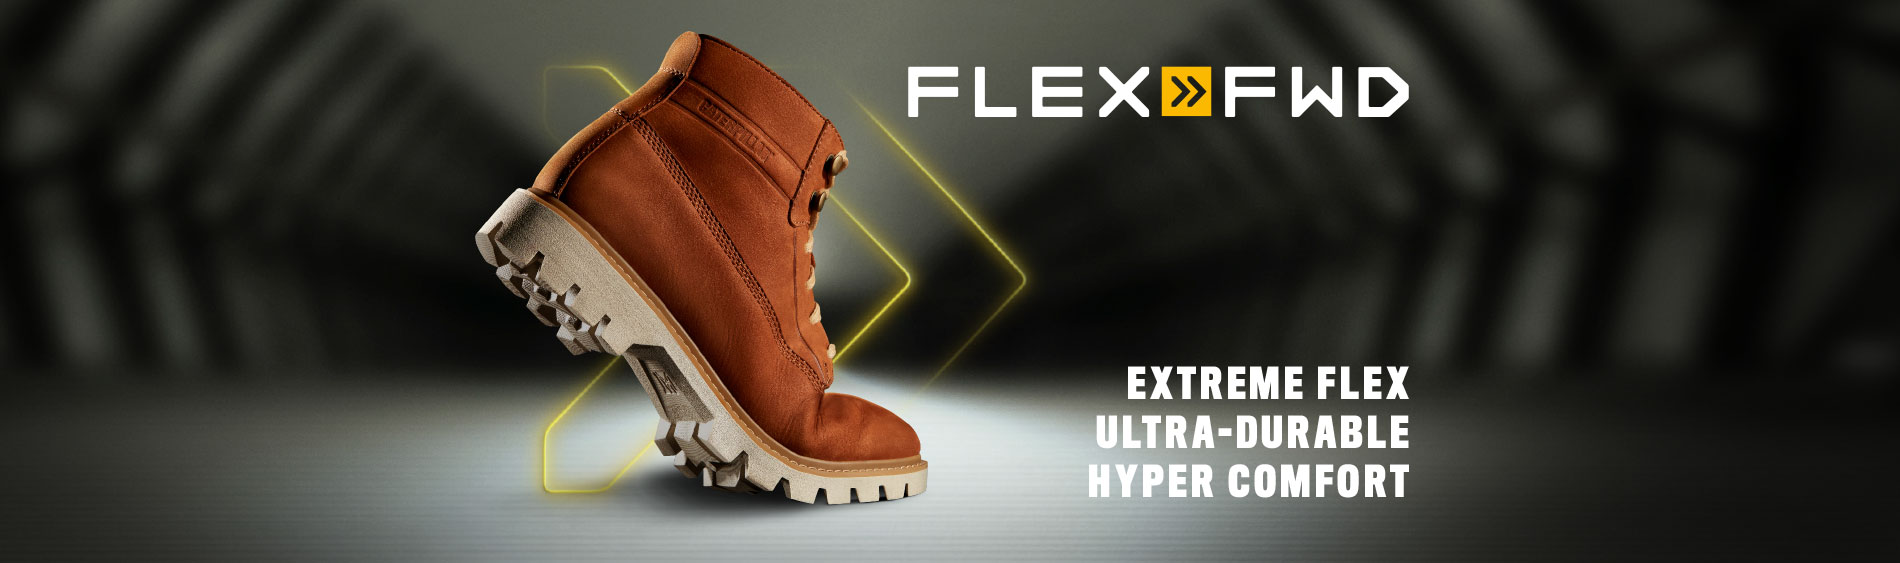 FlexFWD - Extreme Flex Ultra-durable Hyper Comfort